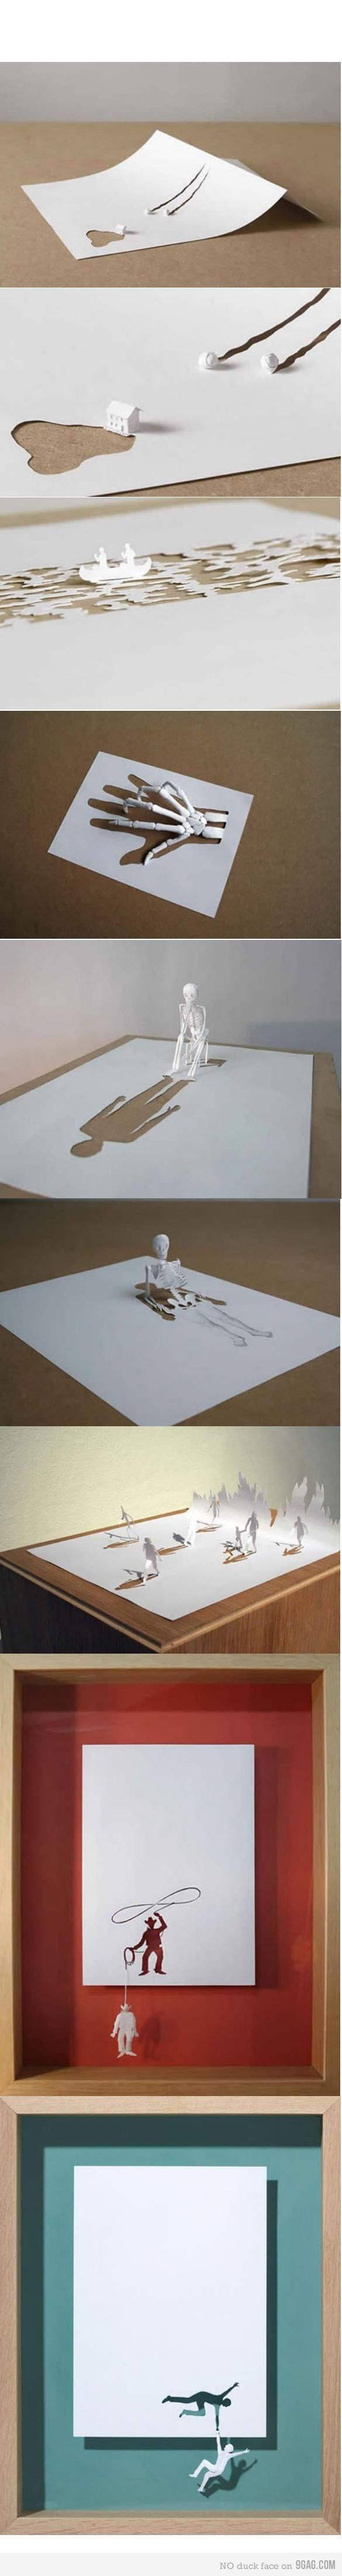 clever paper art.